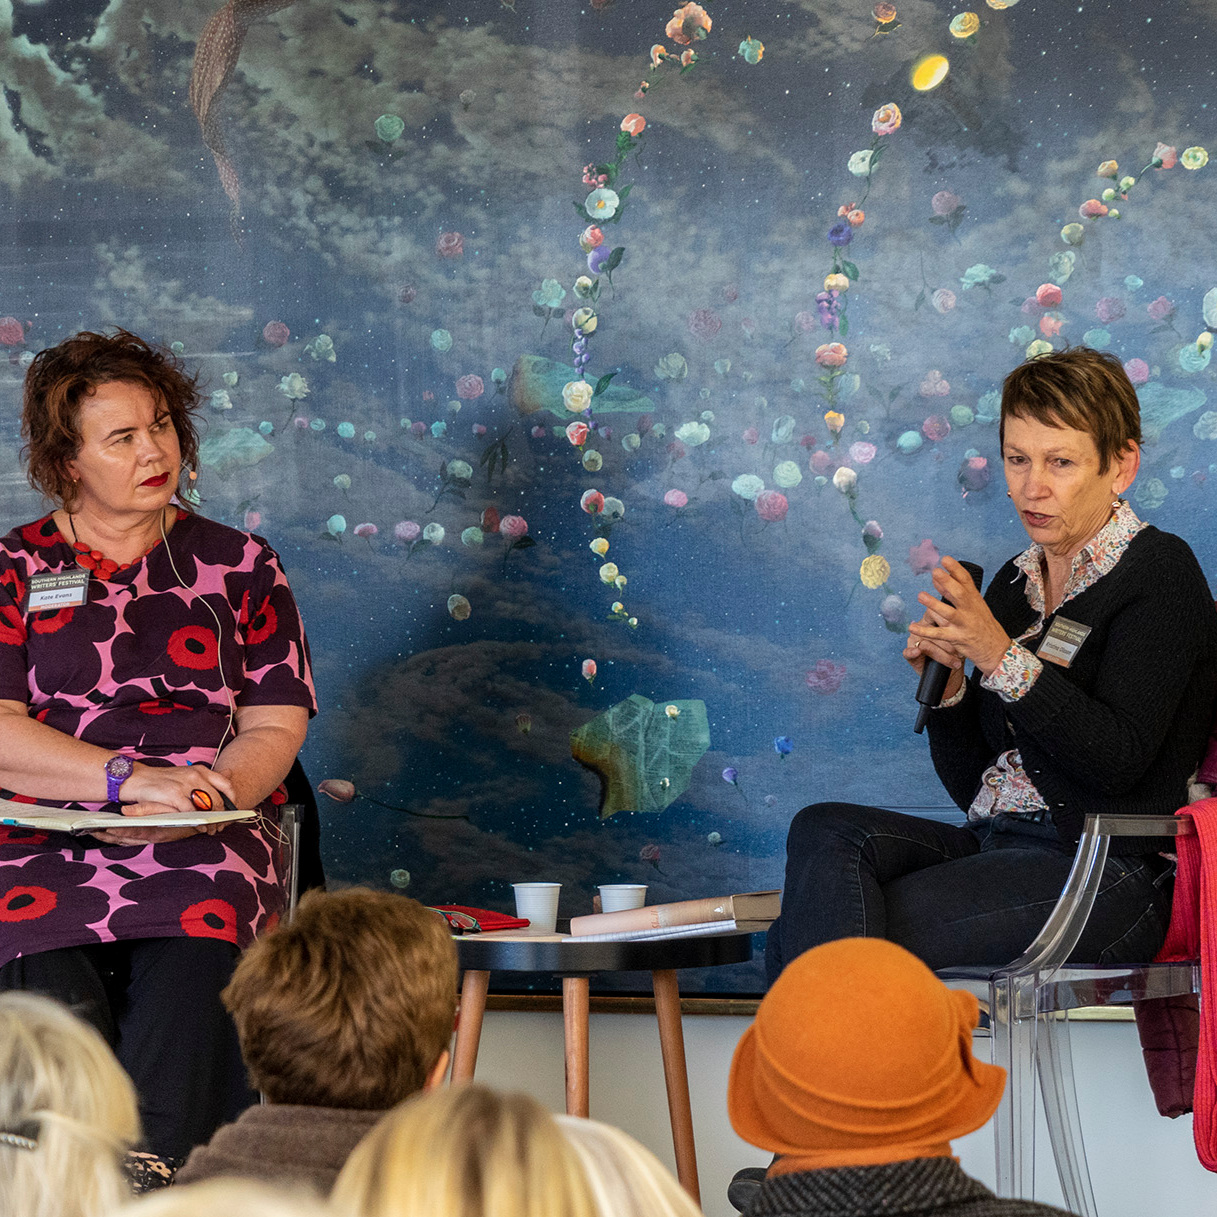 SHWF'19 - SOUTHERN HIGHLANDS WRITERS FESTIVAL 2019HOSTED IN THE PAVILION AT HOPEWOOD HOUSE20th JULY 2019 | PAST EVENT